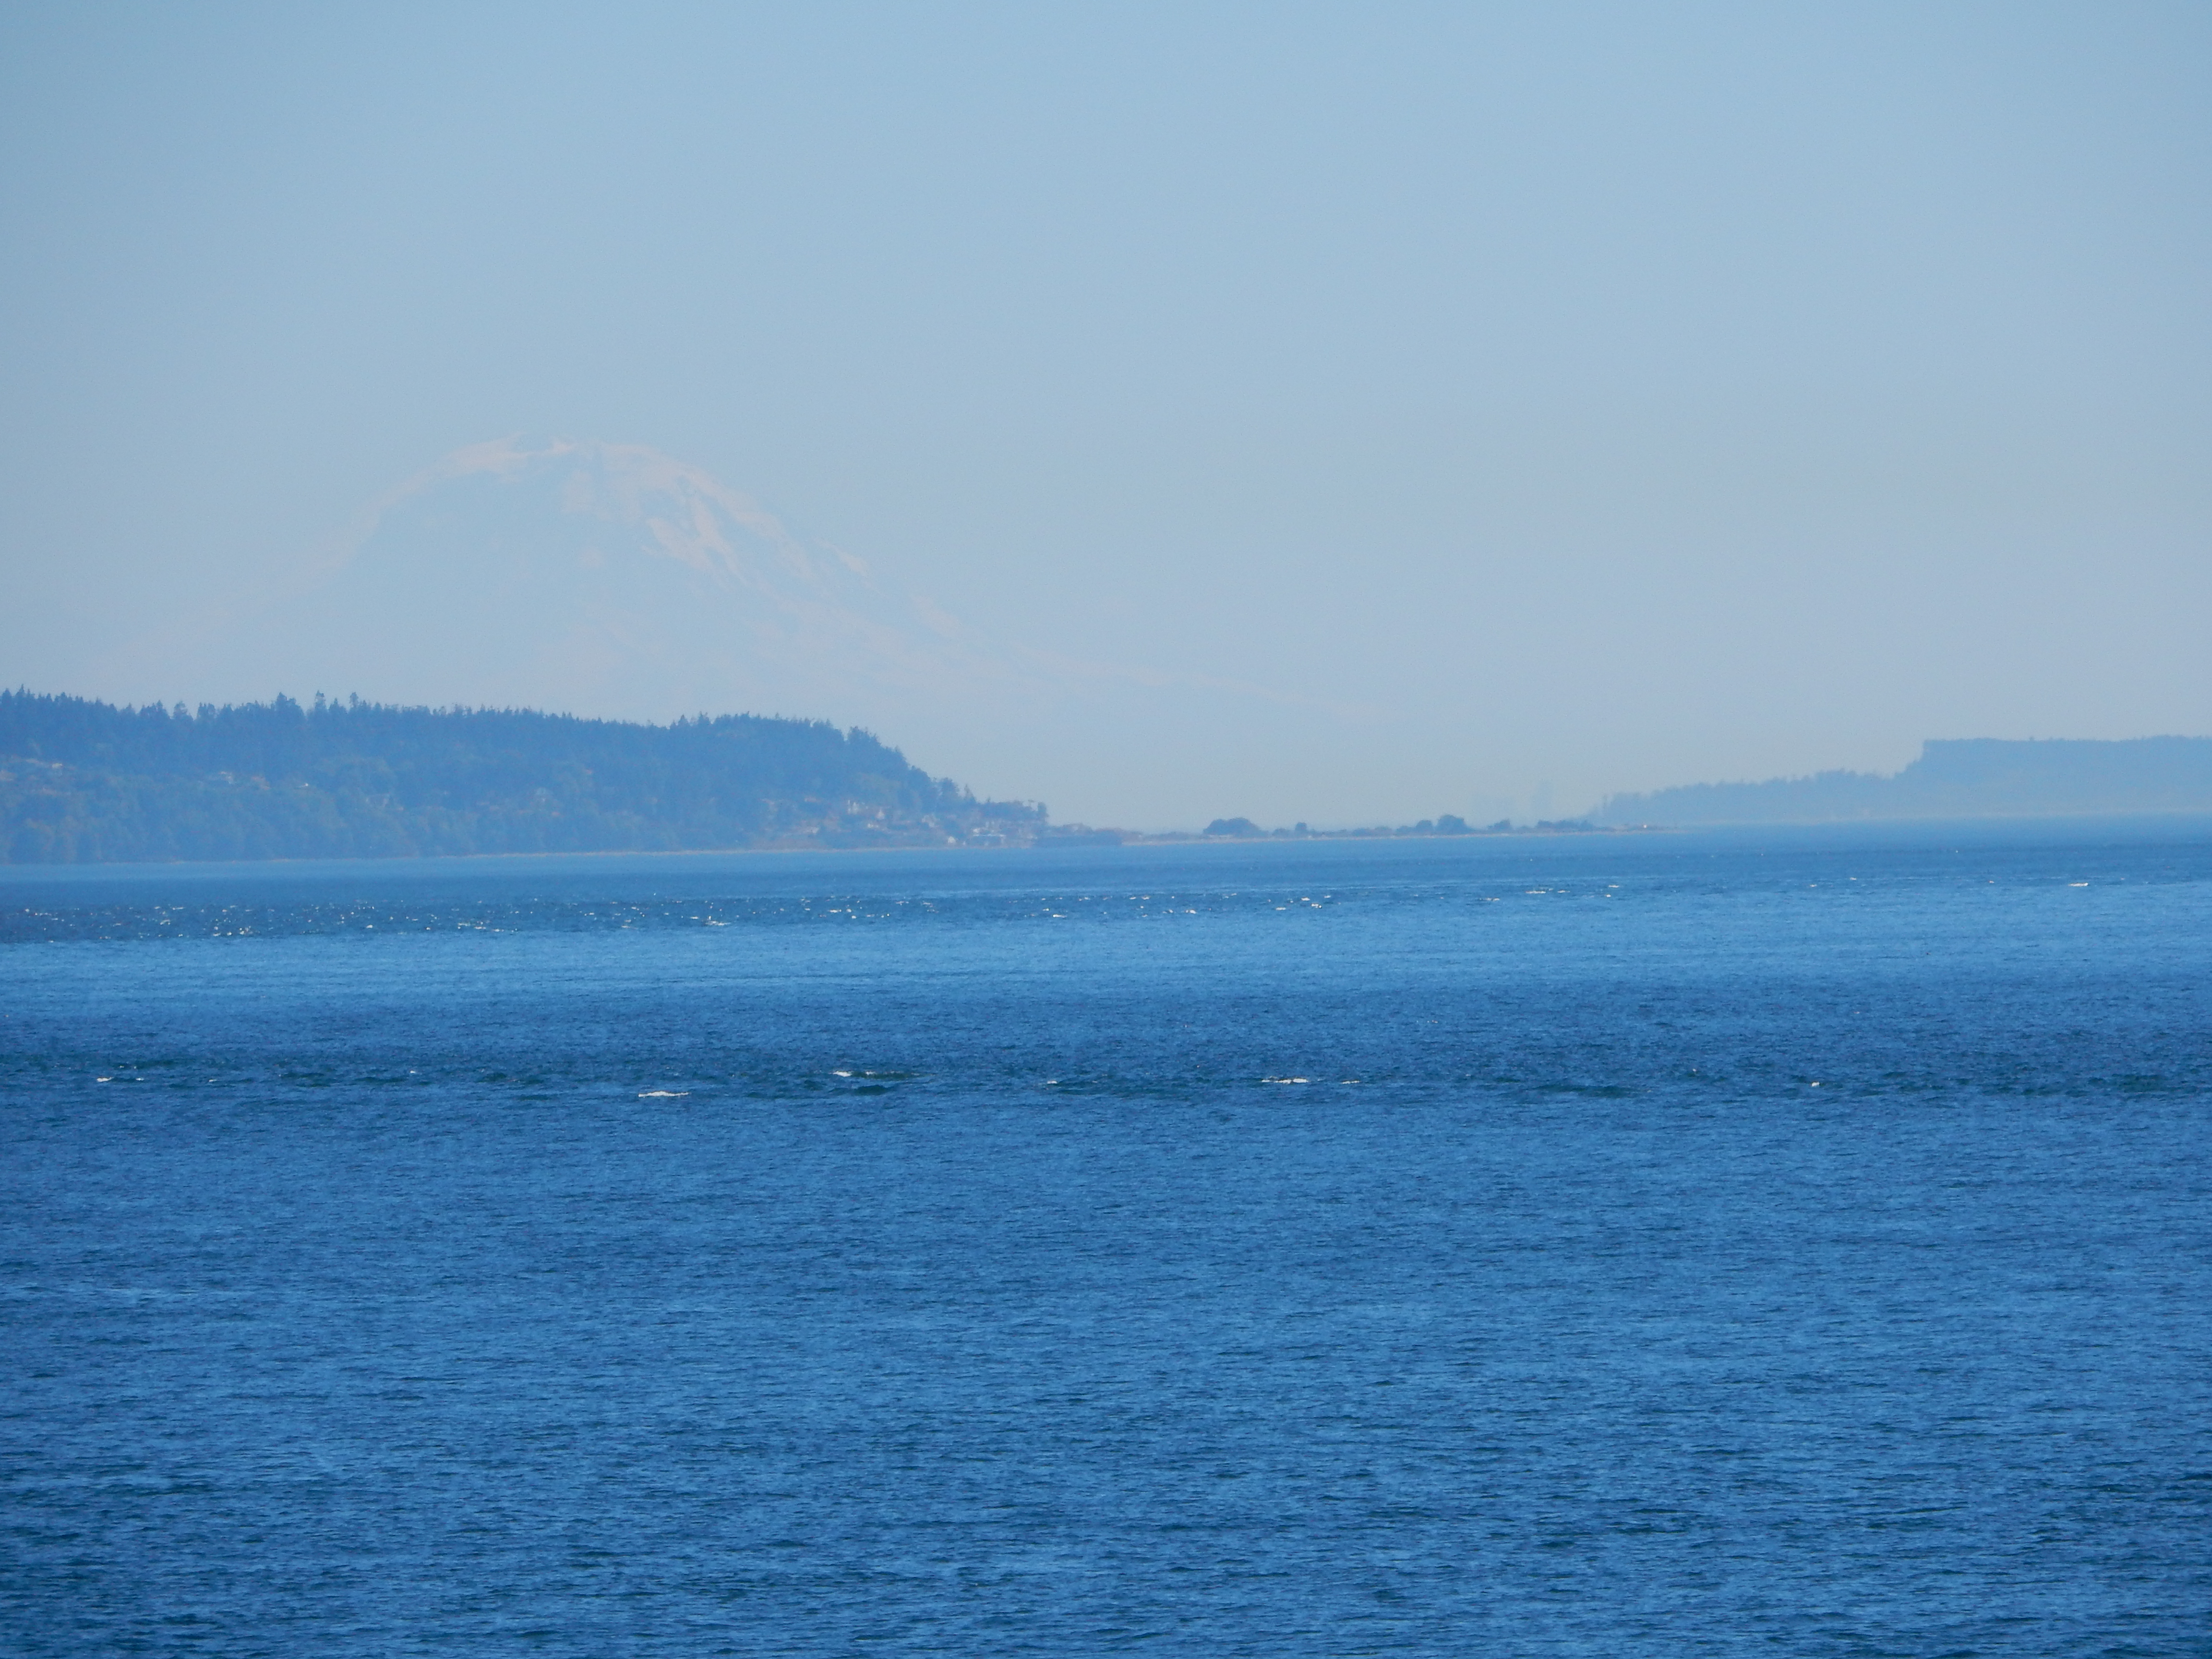 Mount Ranier hides in the haze, as viewed from the Port Townsend ferry.